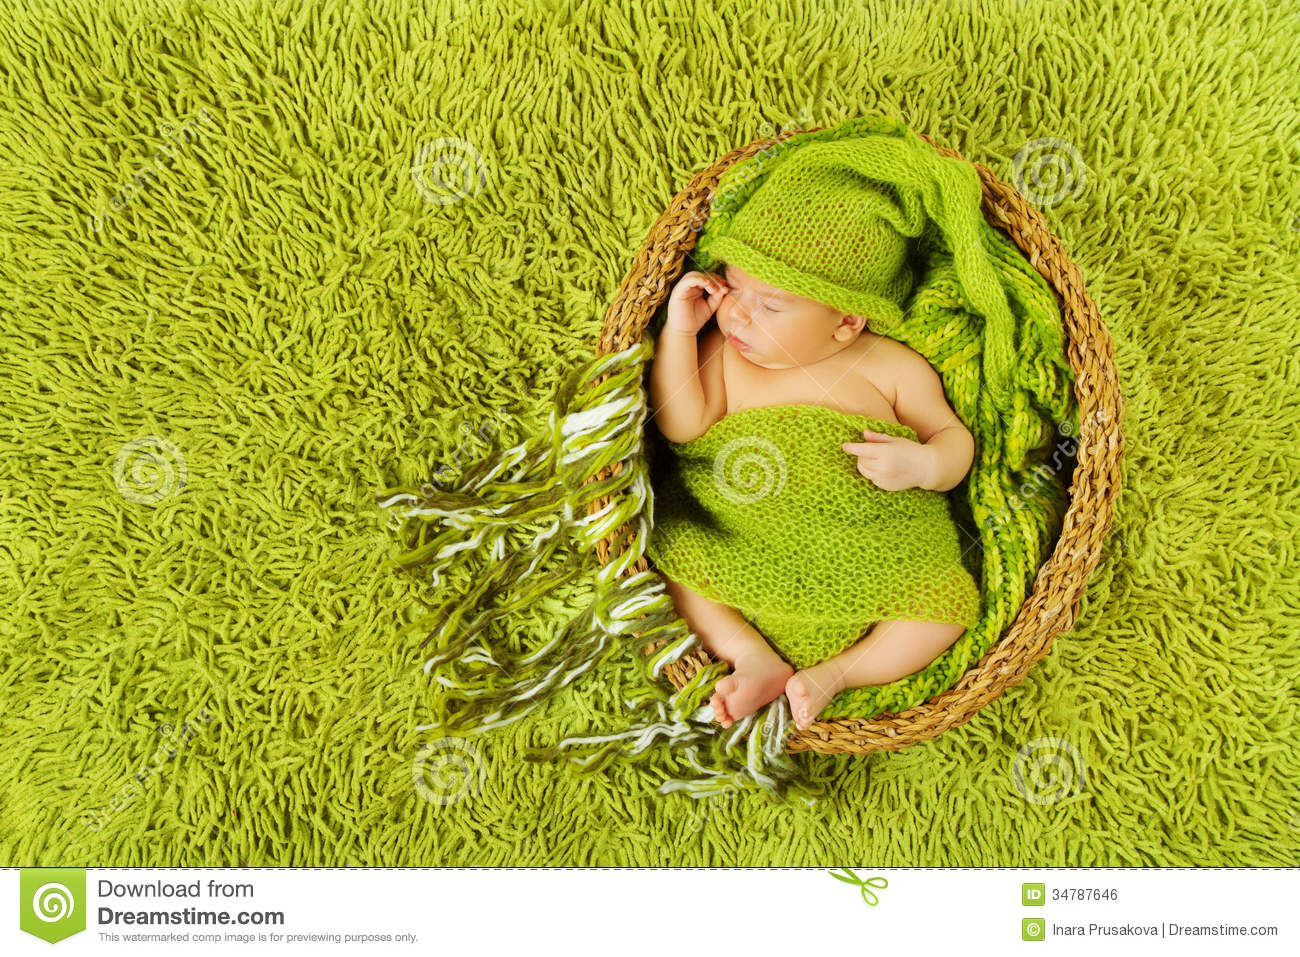 Baby Newborn Sleeping In Woolen Hat, Green Carpet Royalty